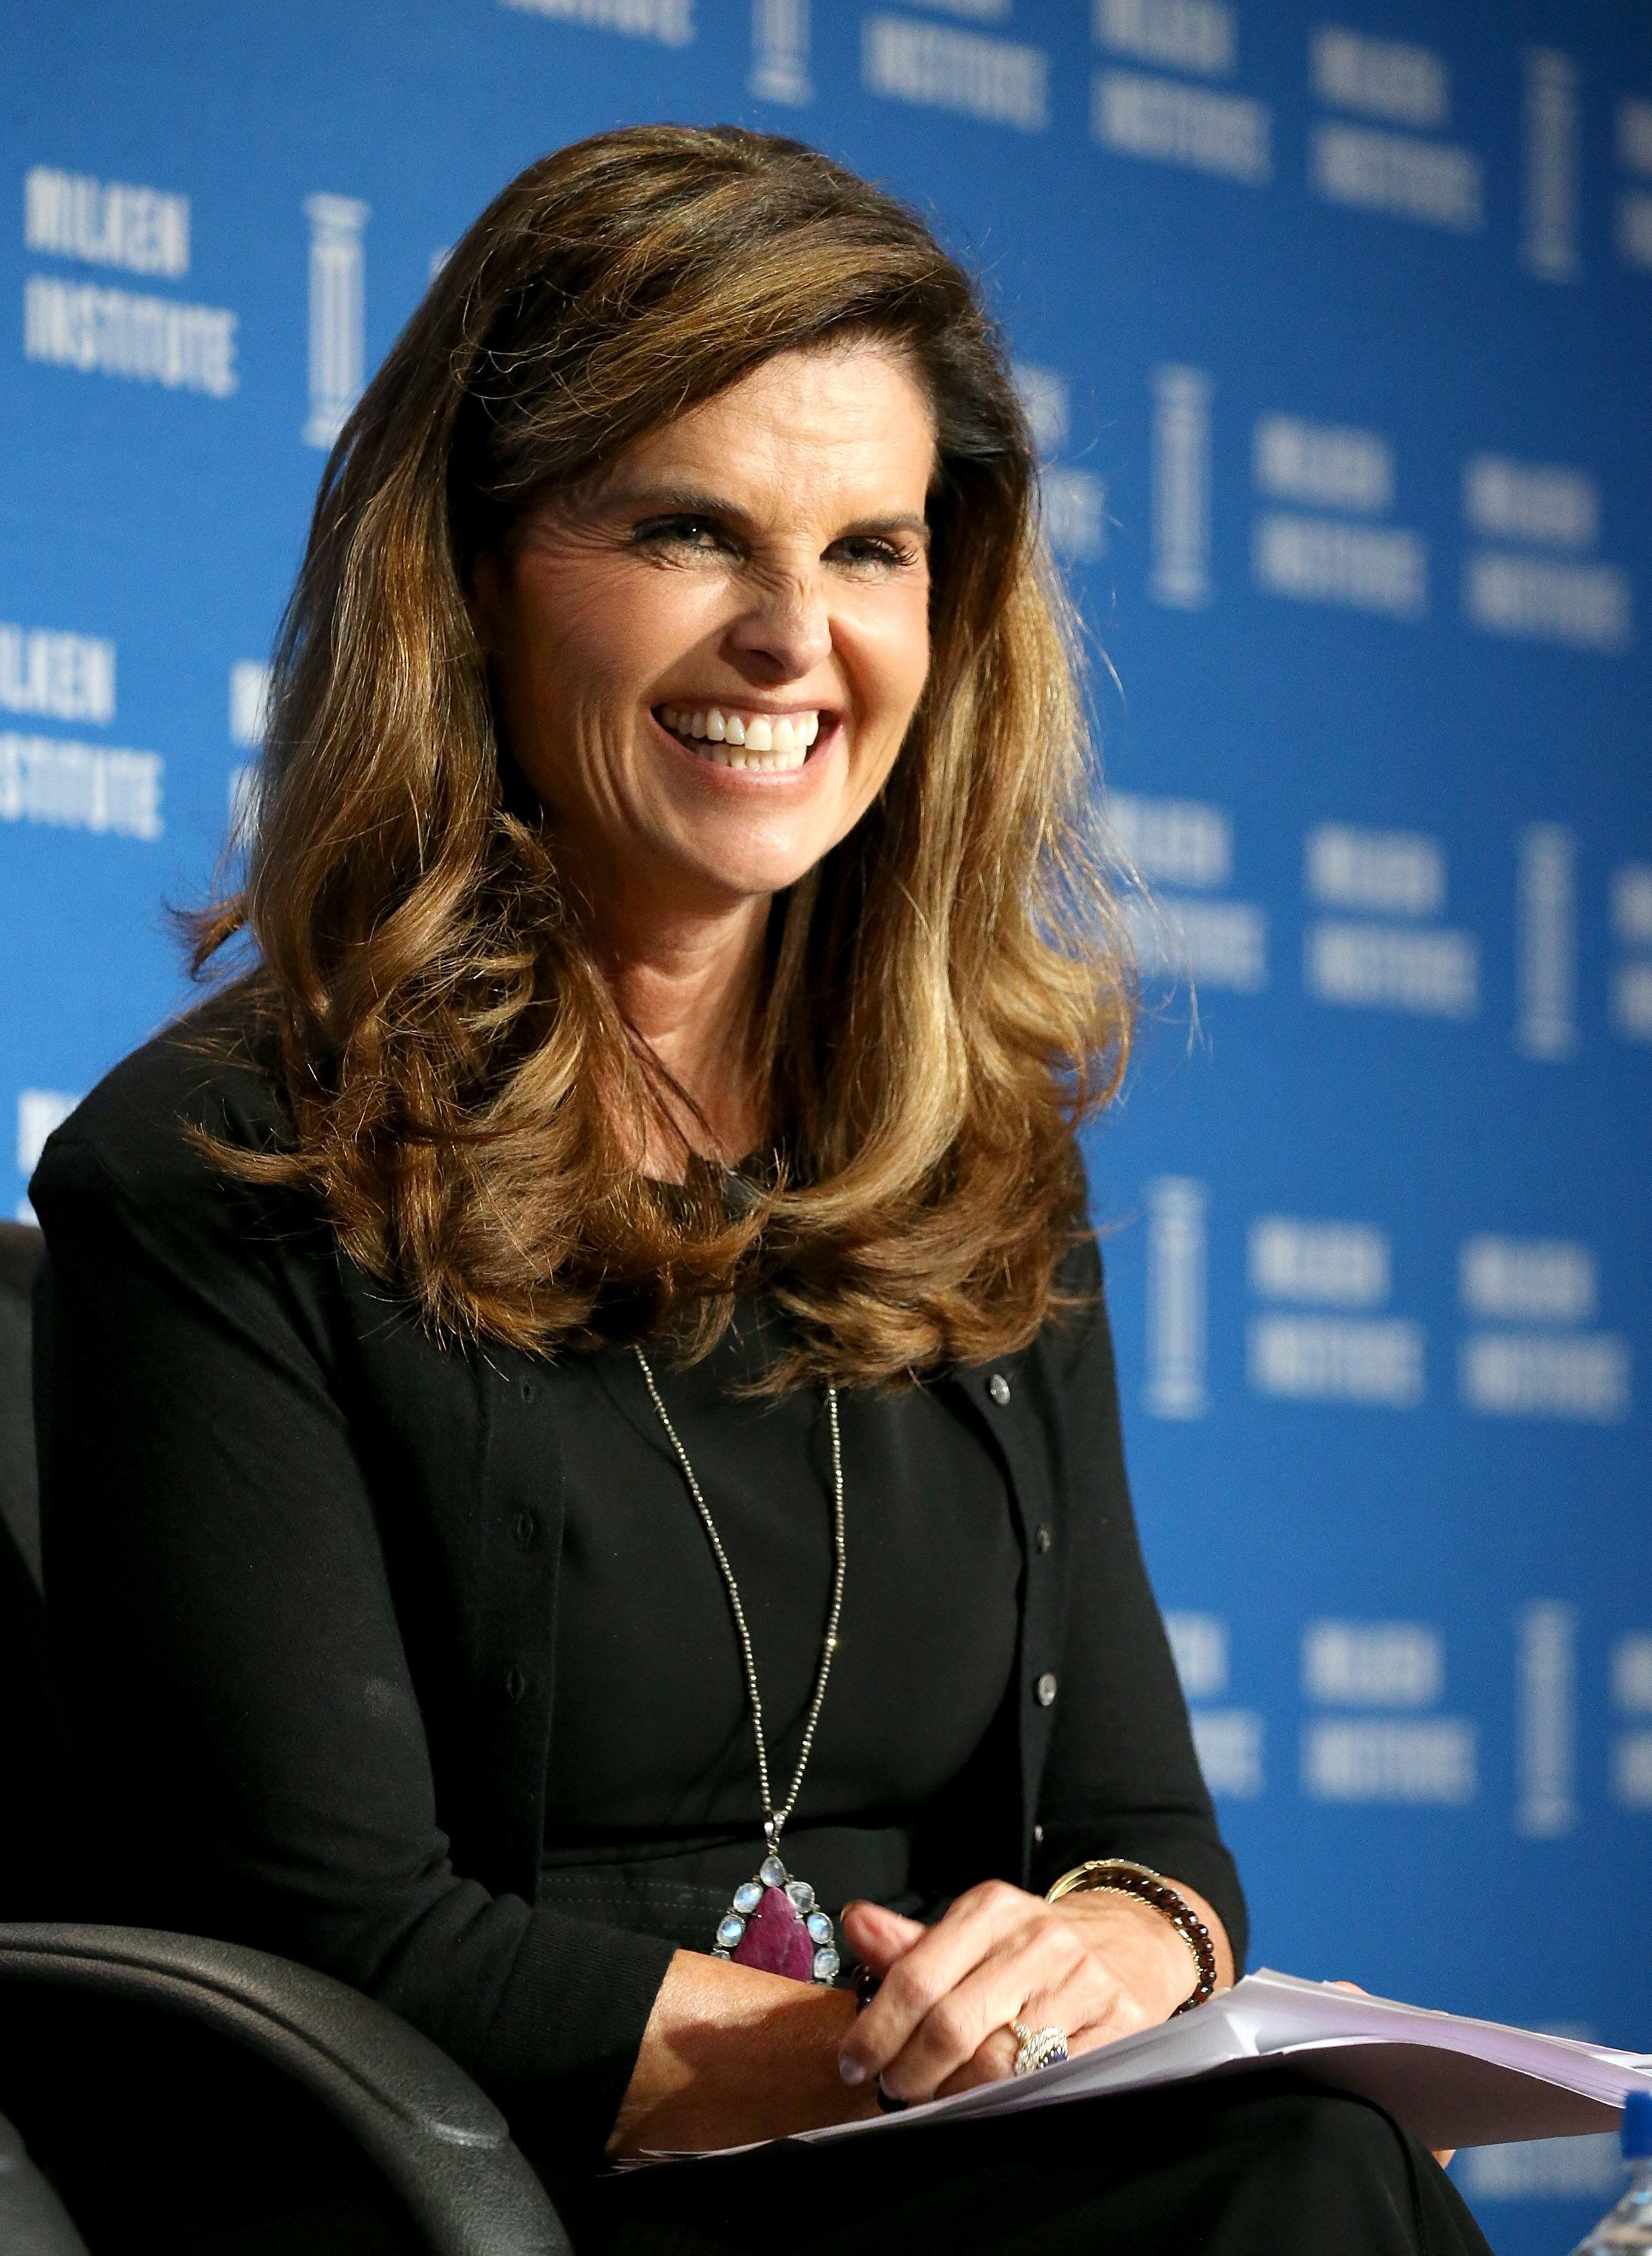 BEVERLY HILLS, CA - MAY 04:  Maria Shriver speaks onstage during the 2016 Milken Institute Global Conference held at The Beverly Hilton Hotel on May 04, 2016 in Beverly Hills, California.  (Photo by Michael Tran/FilmMagic)